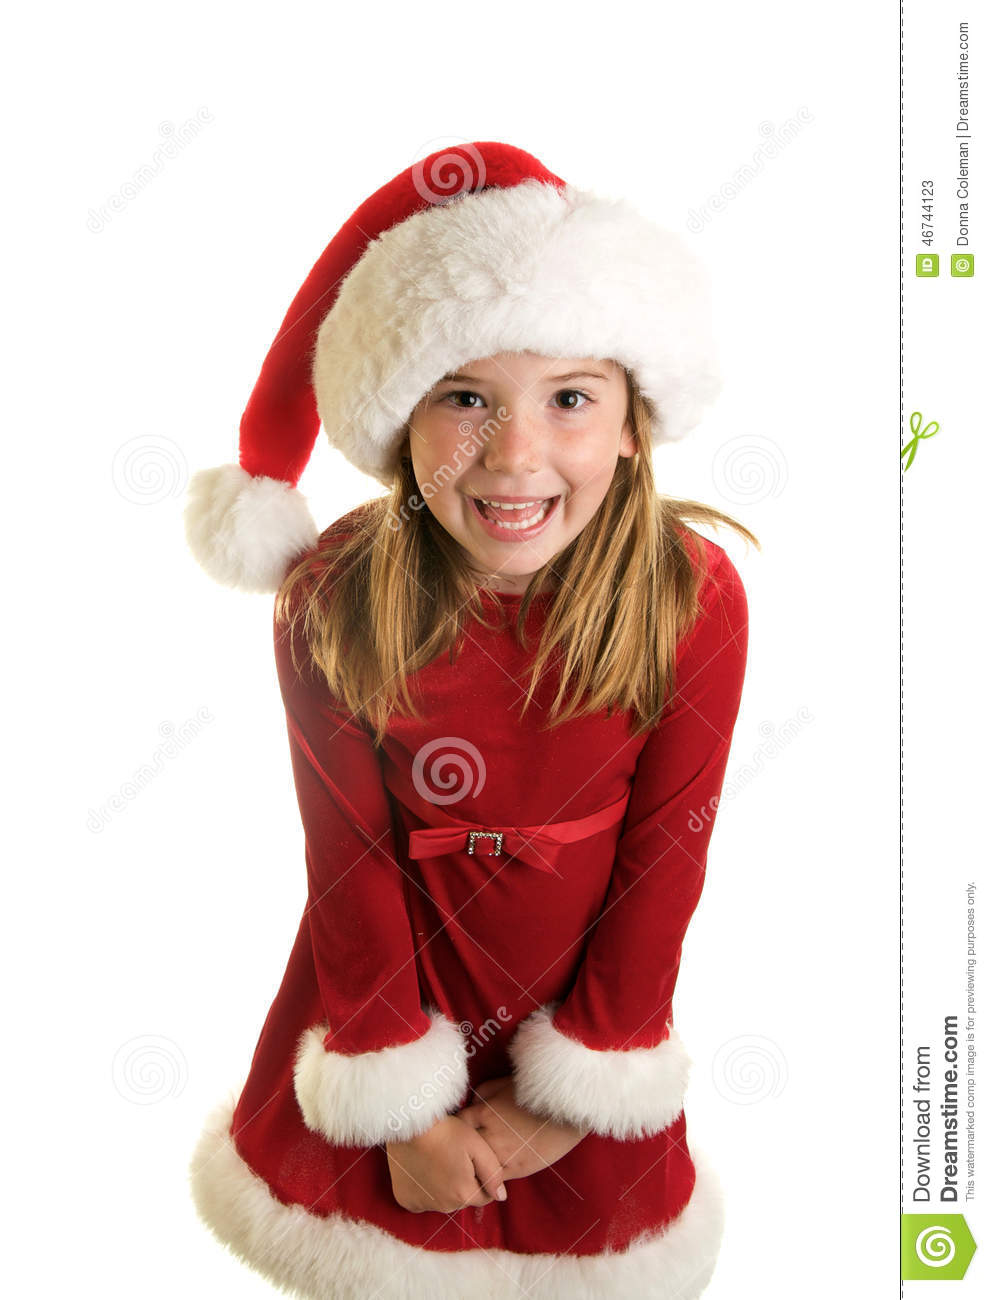 e64eac03feb9 A Cute Little Girl In A Santa Claus Hat And Christmas Dress Stock ...